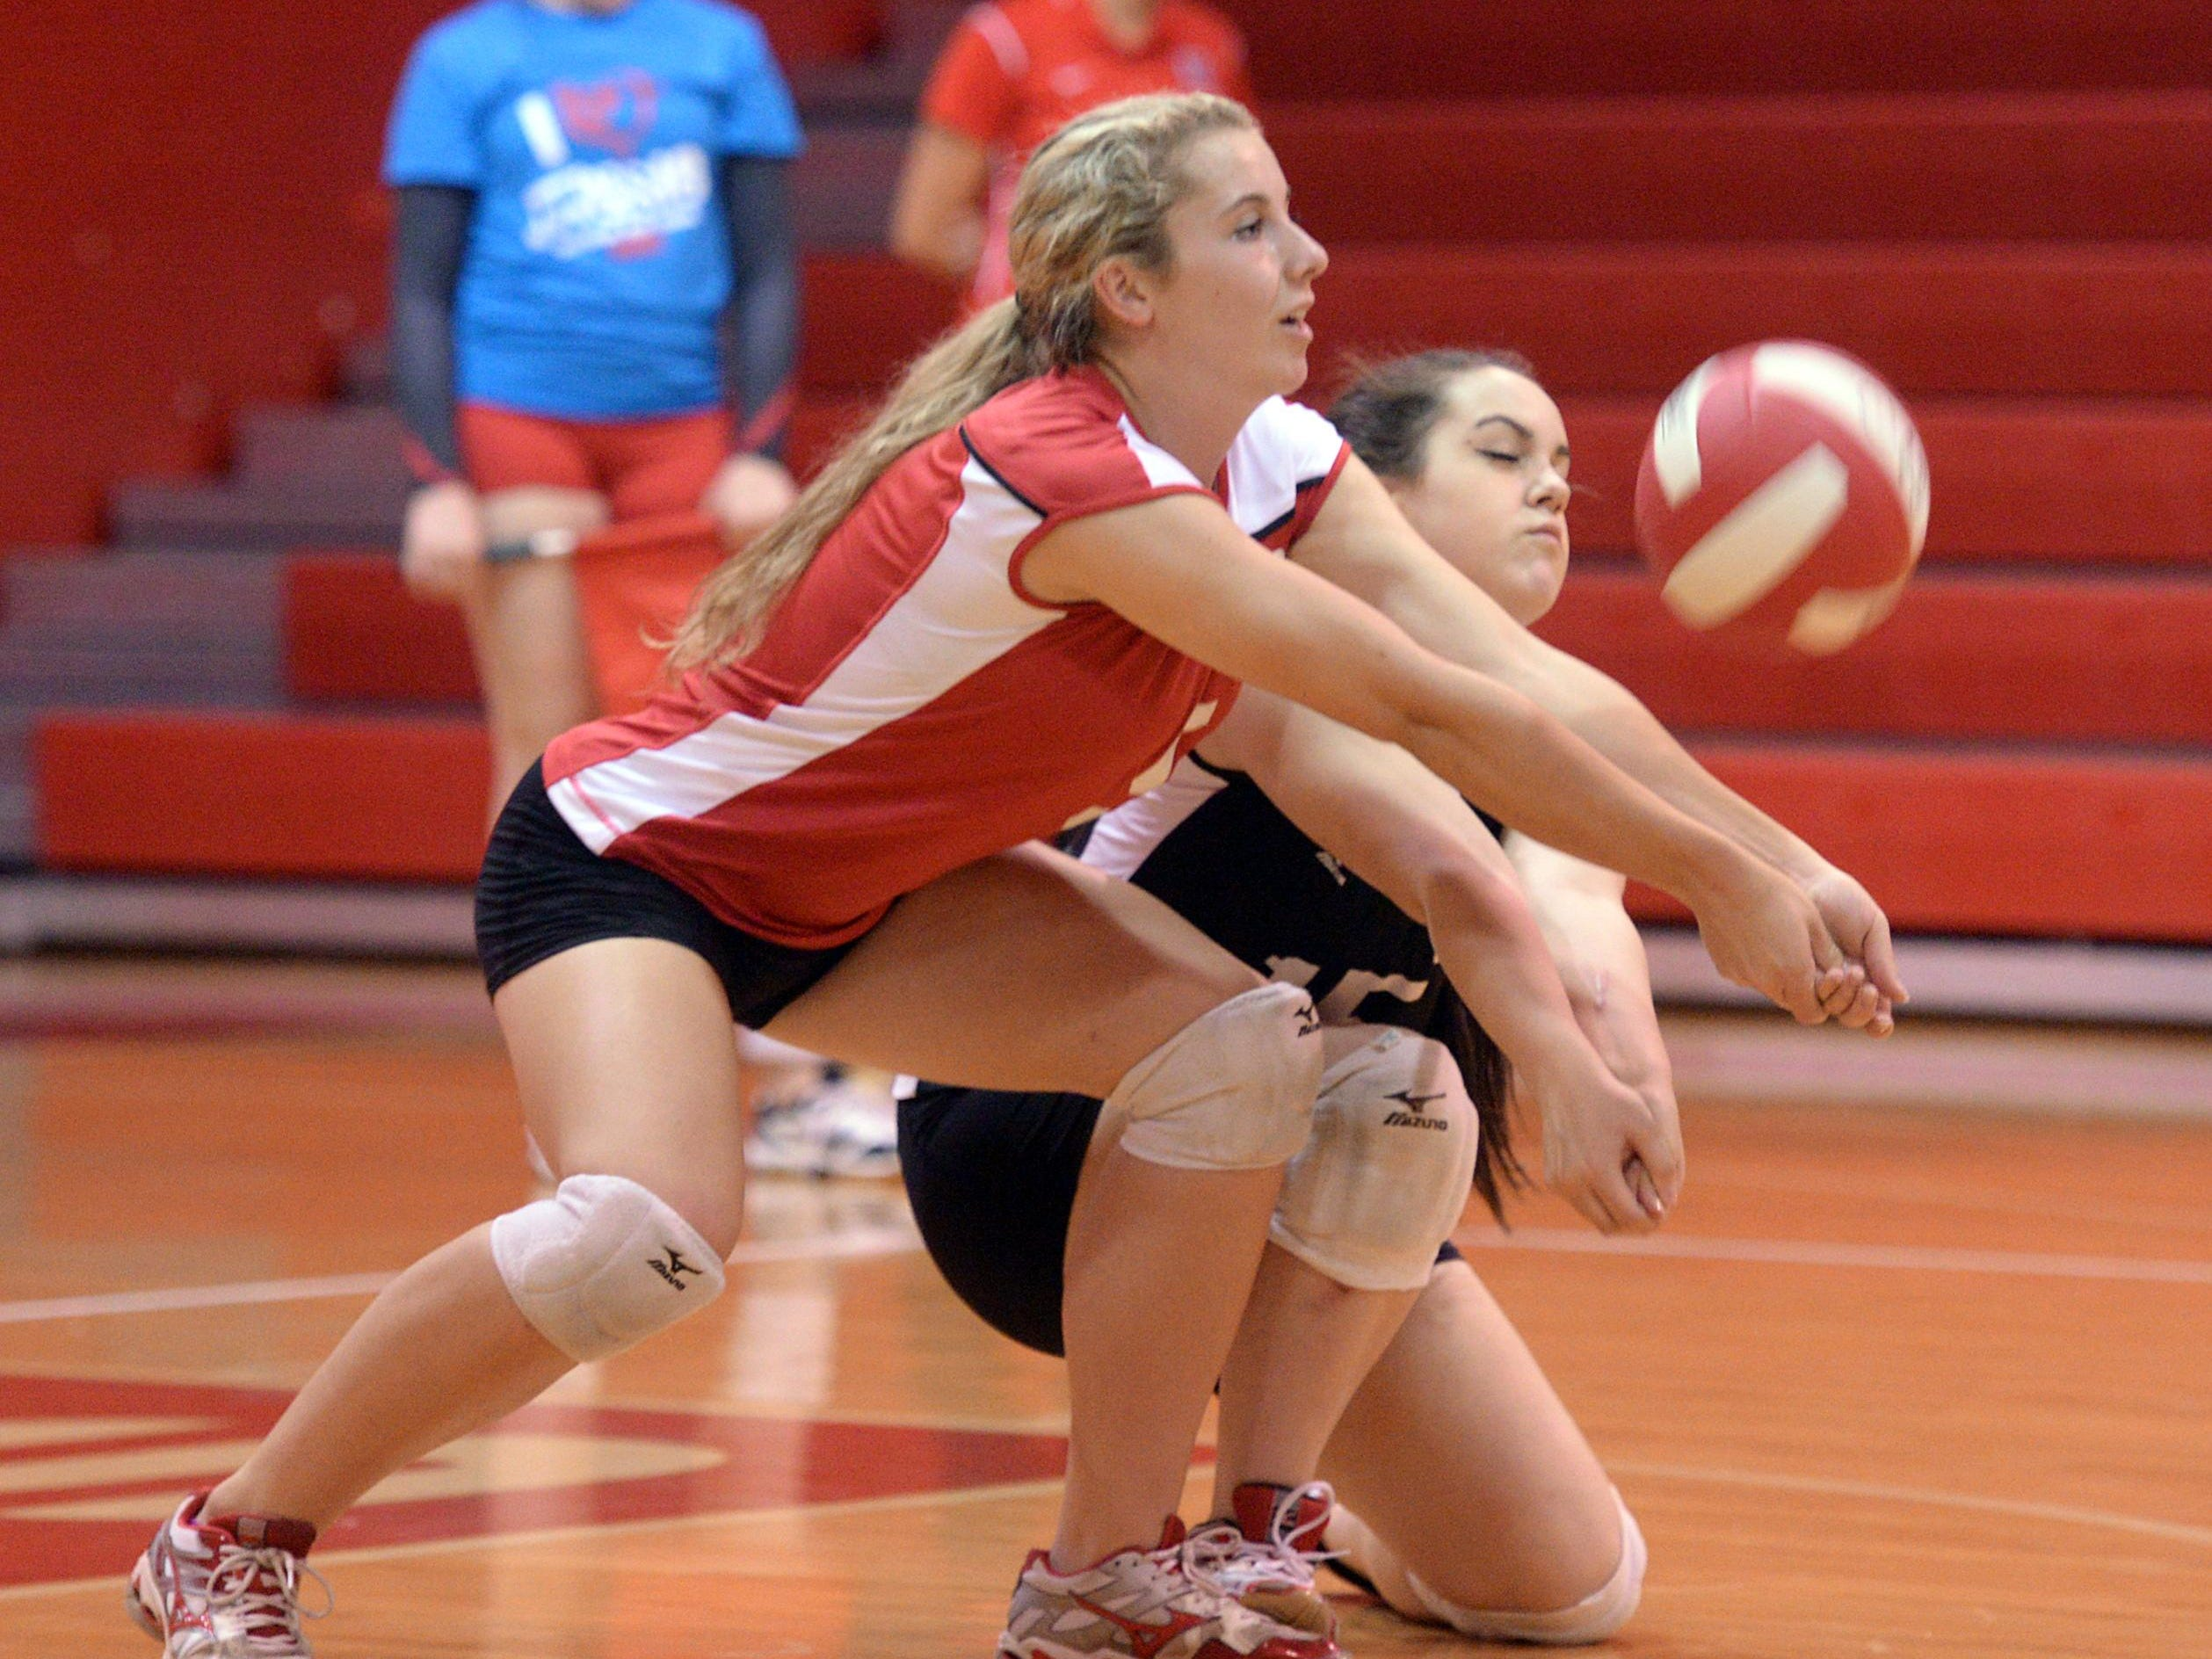 Ruston's Kara Goff gets tied up with teammate Reanne Ginn as they return volley against Haughton in volleyball.